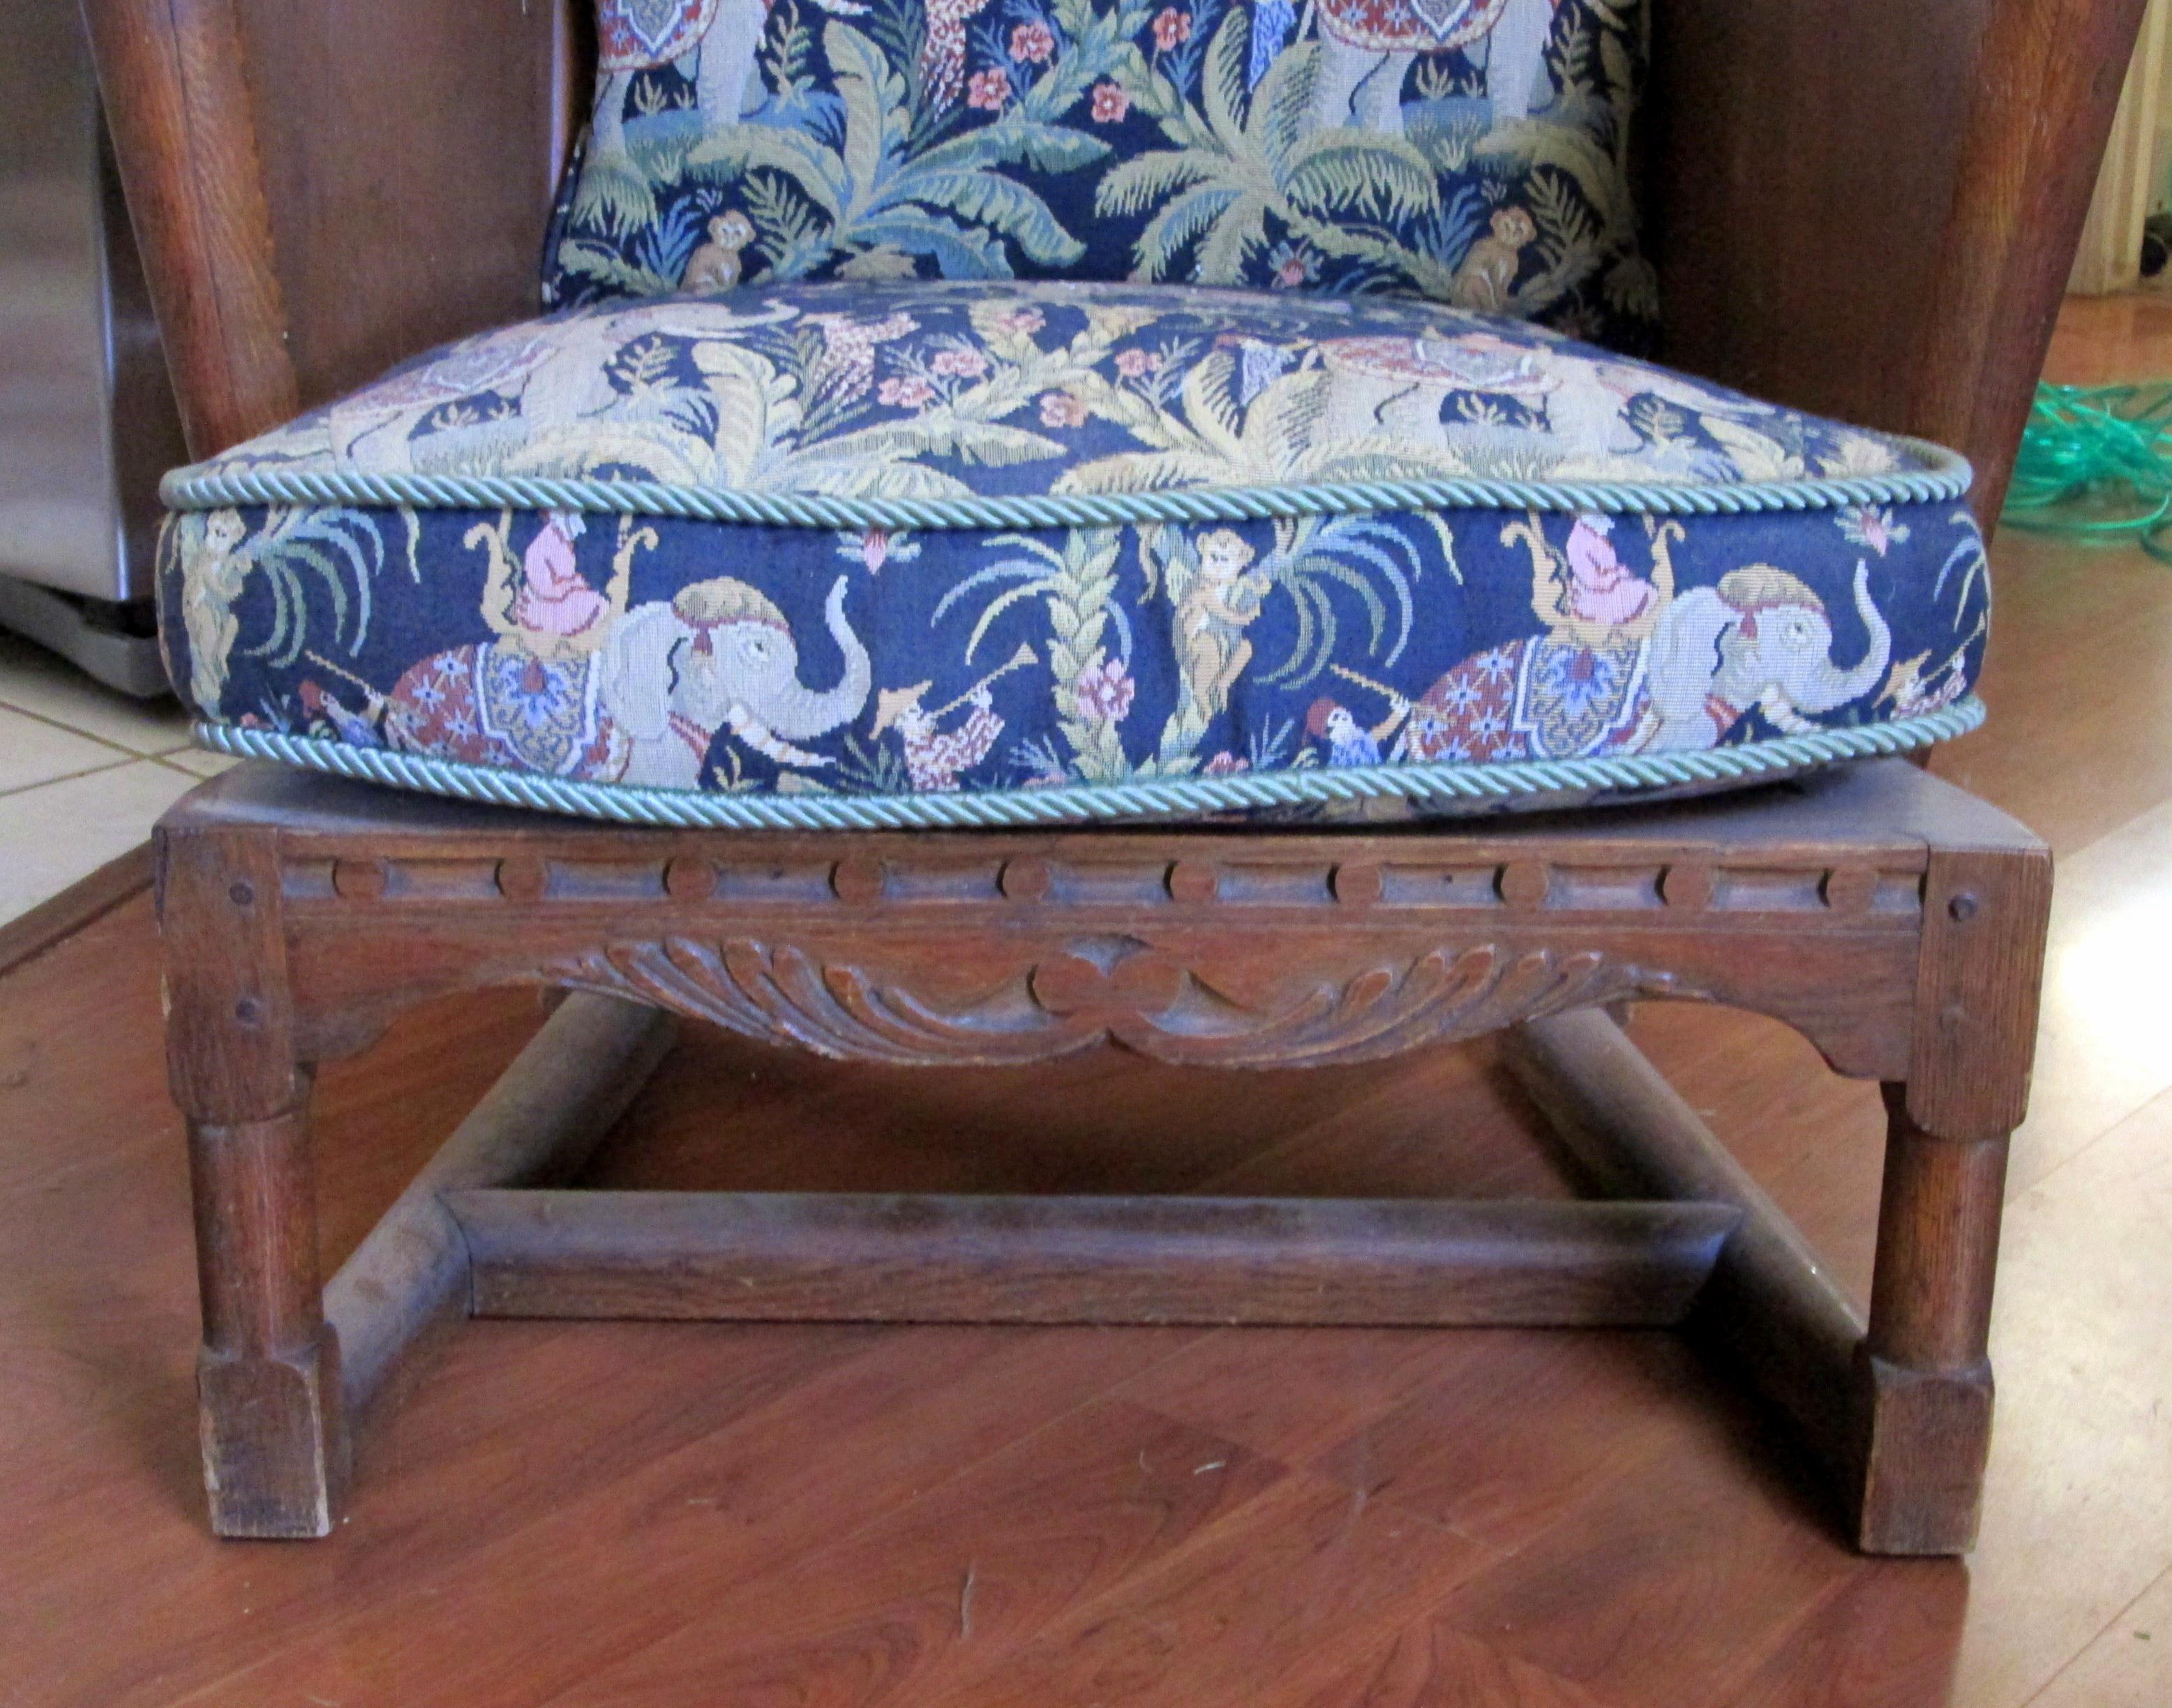 antique ornate carved wooden wingback chair w monkey u0026 elephant upholstered cushions image 3